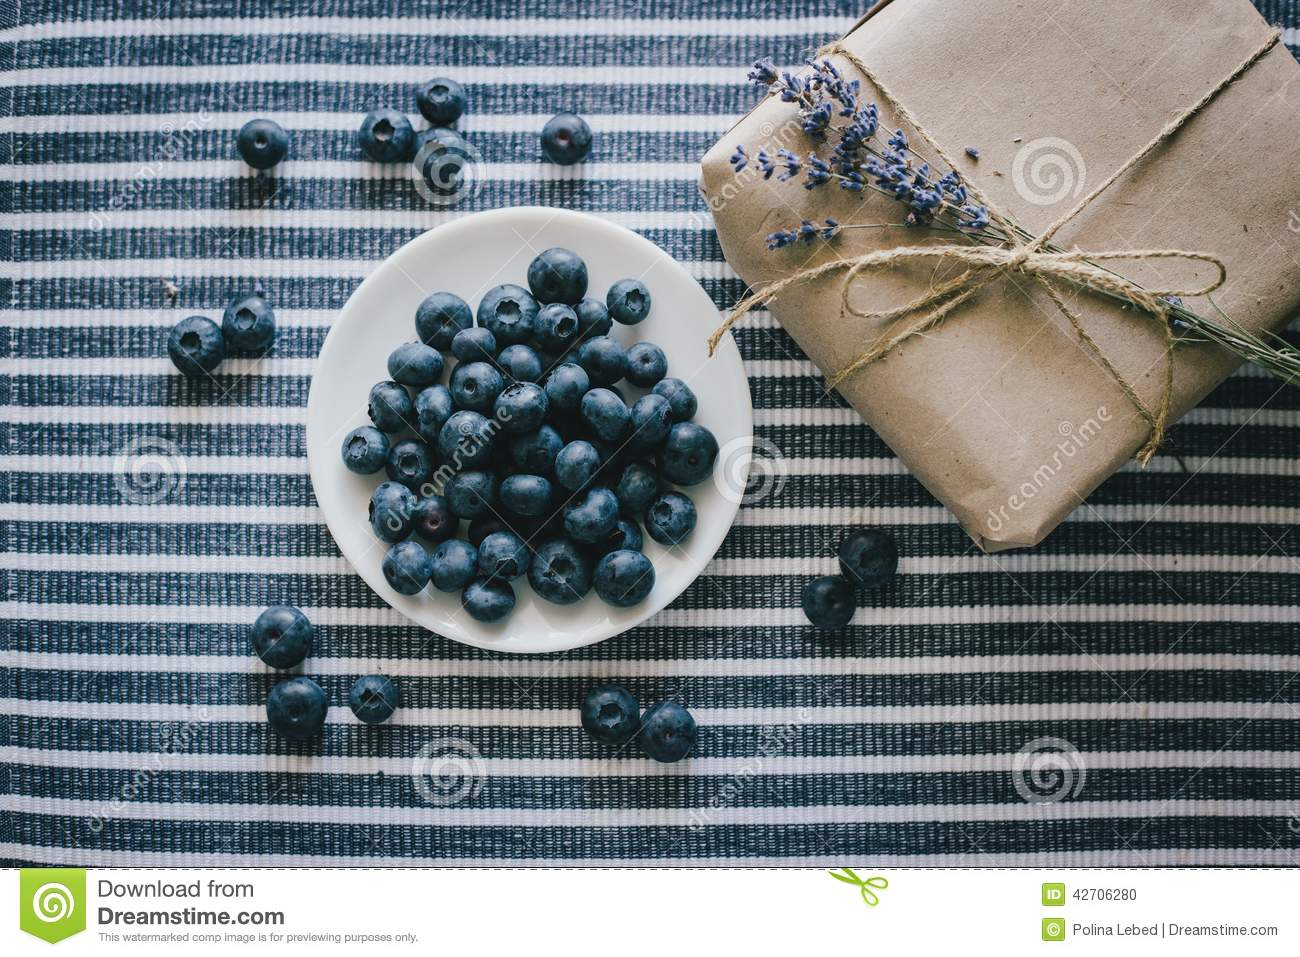 e8ce9b9ee07 Plate with blueberries on a striped tablecloth standing near wrapped  present with lavender